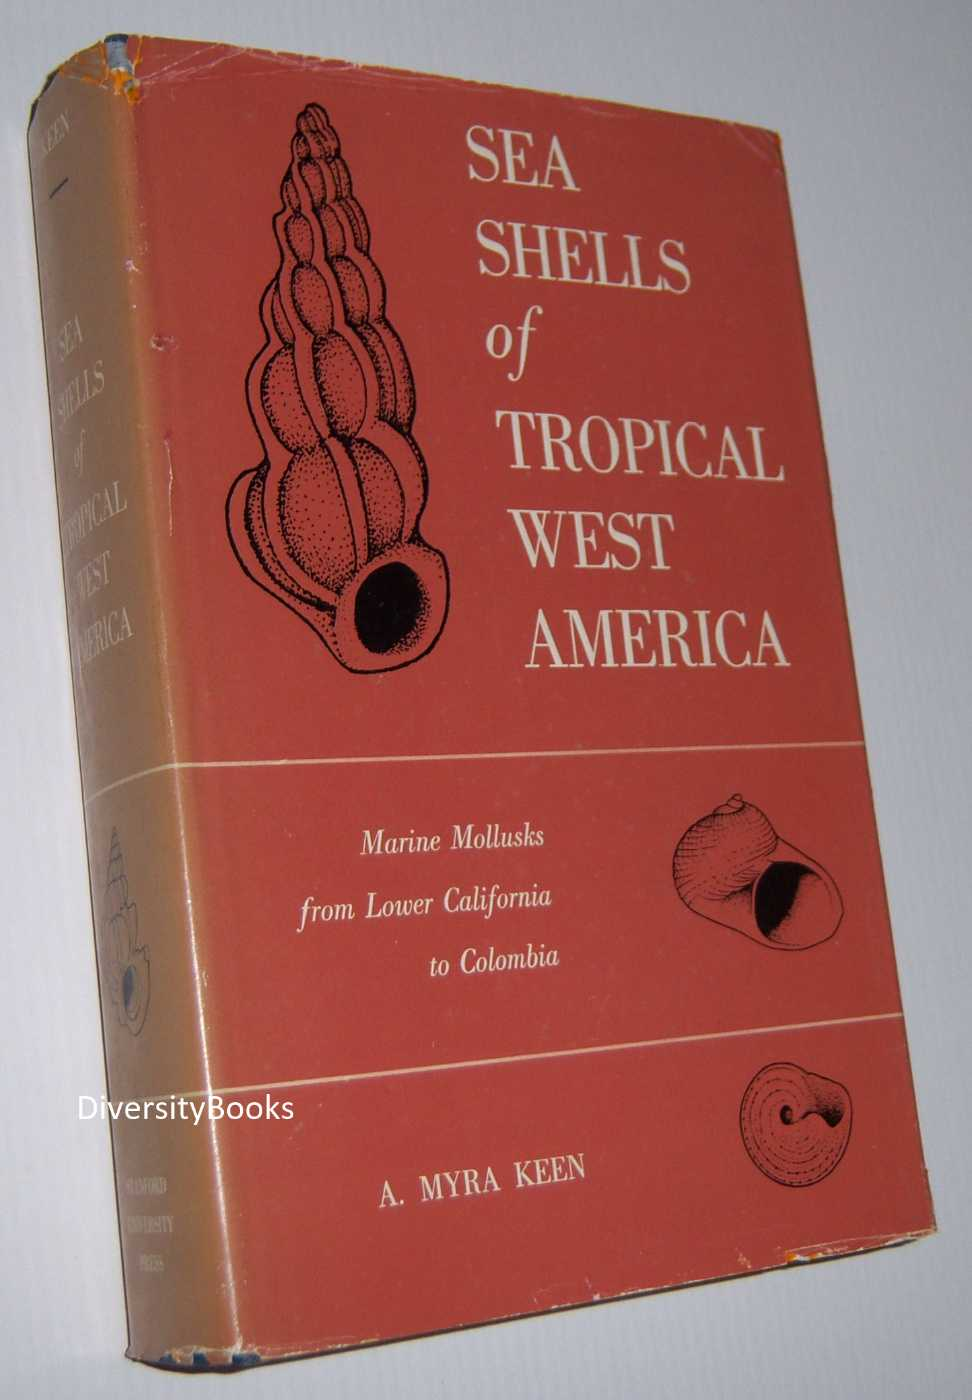 Image for SEA SHELLS OF TROPICAL WEST AMERICA: Marine Mollusks from Lower California to Columbia